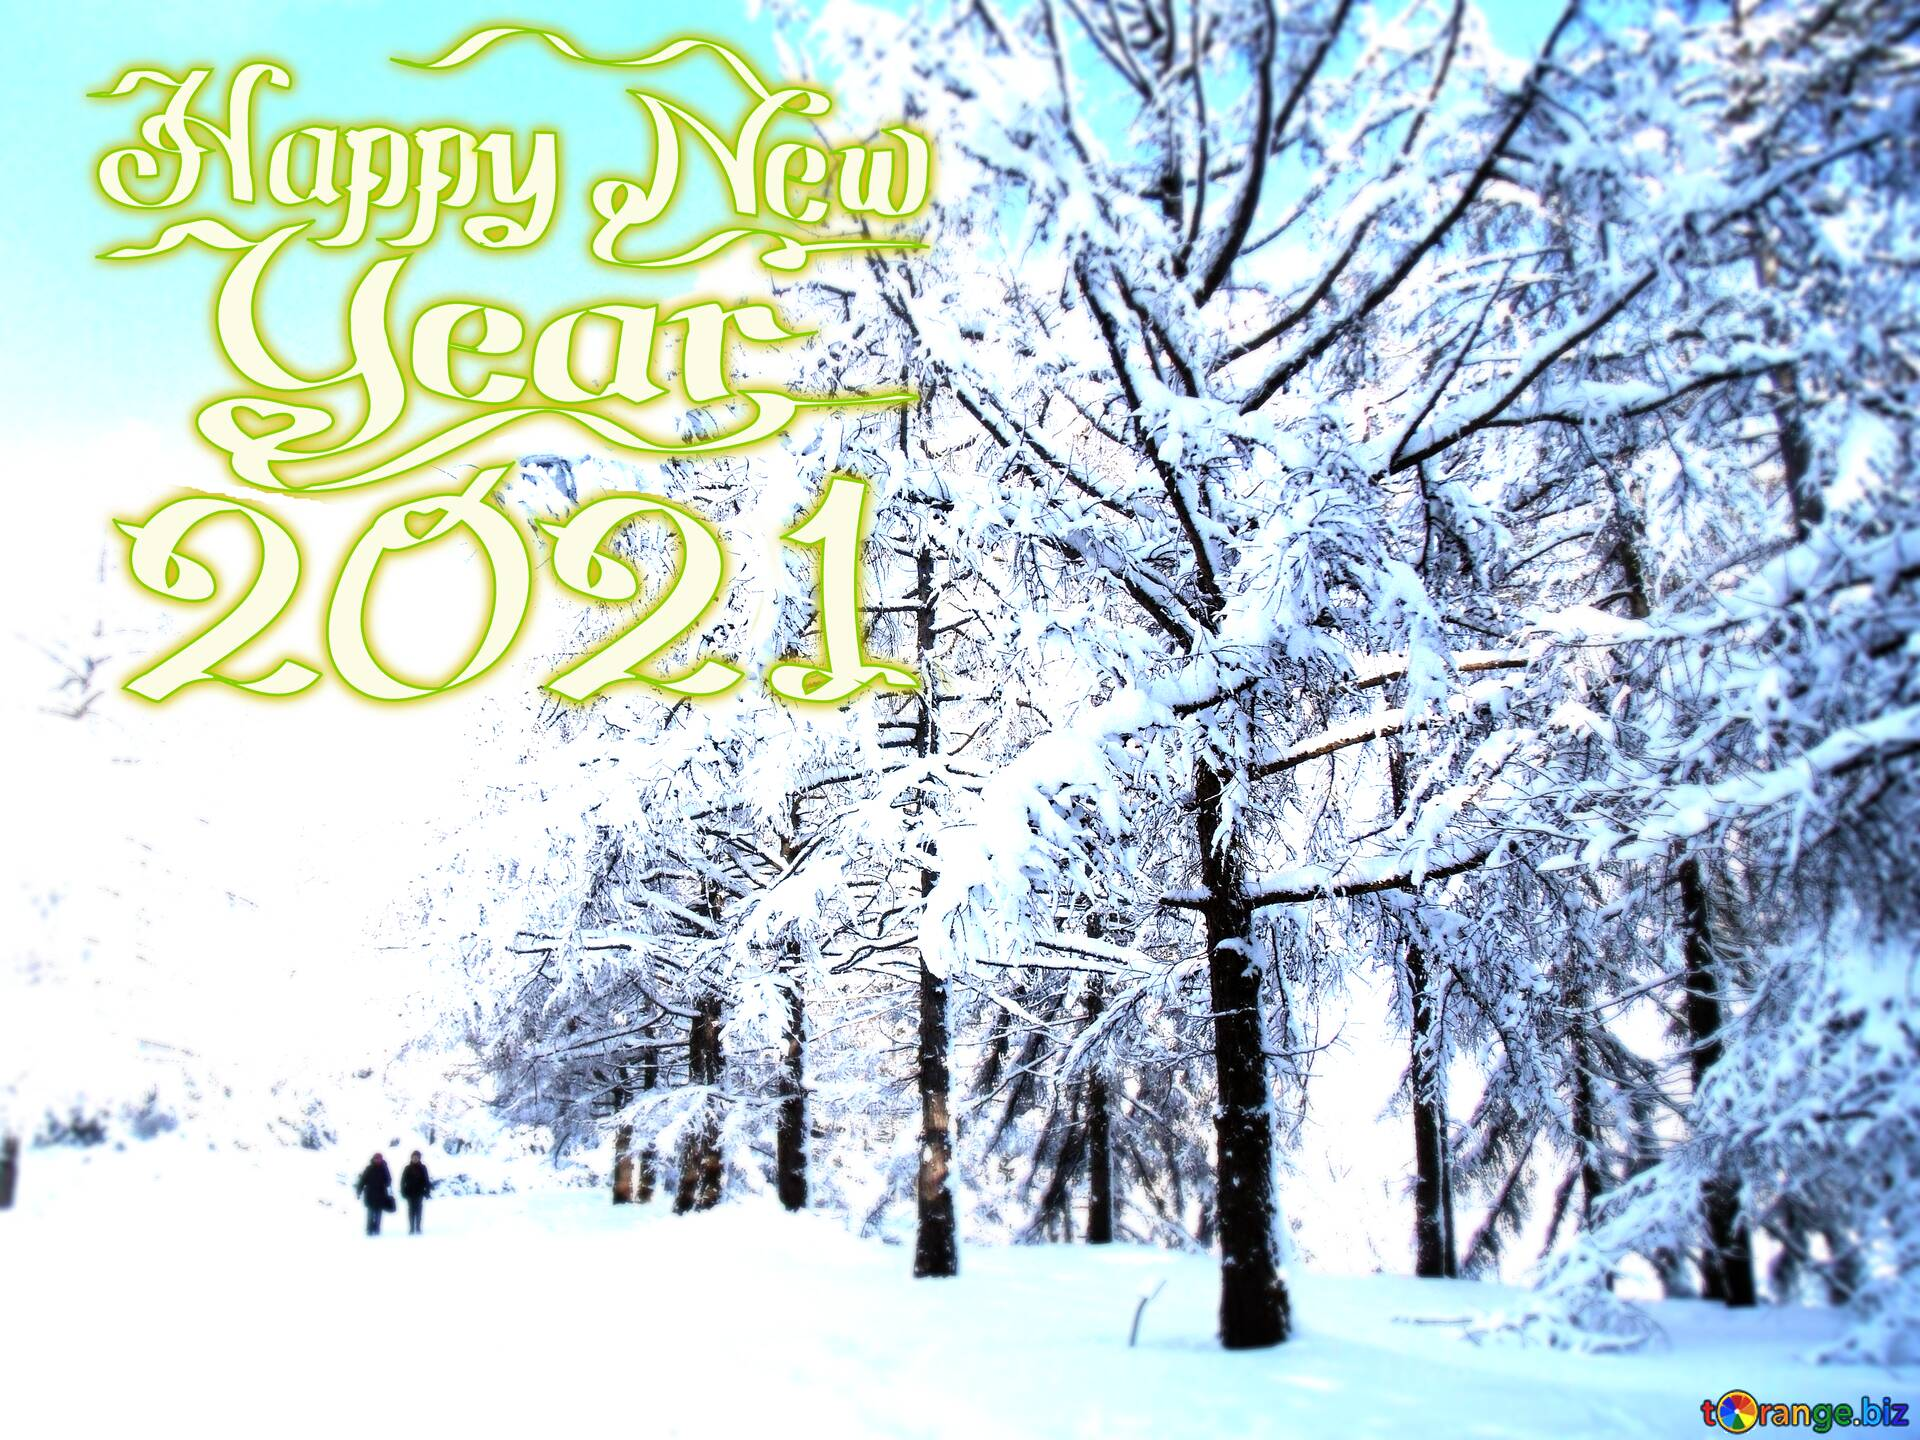 Download picture The Snow Winter forest happy new year 2021 1920x1440